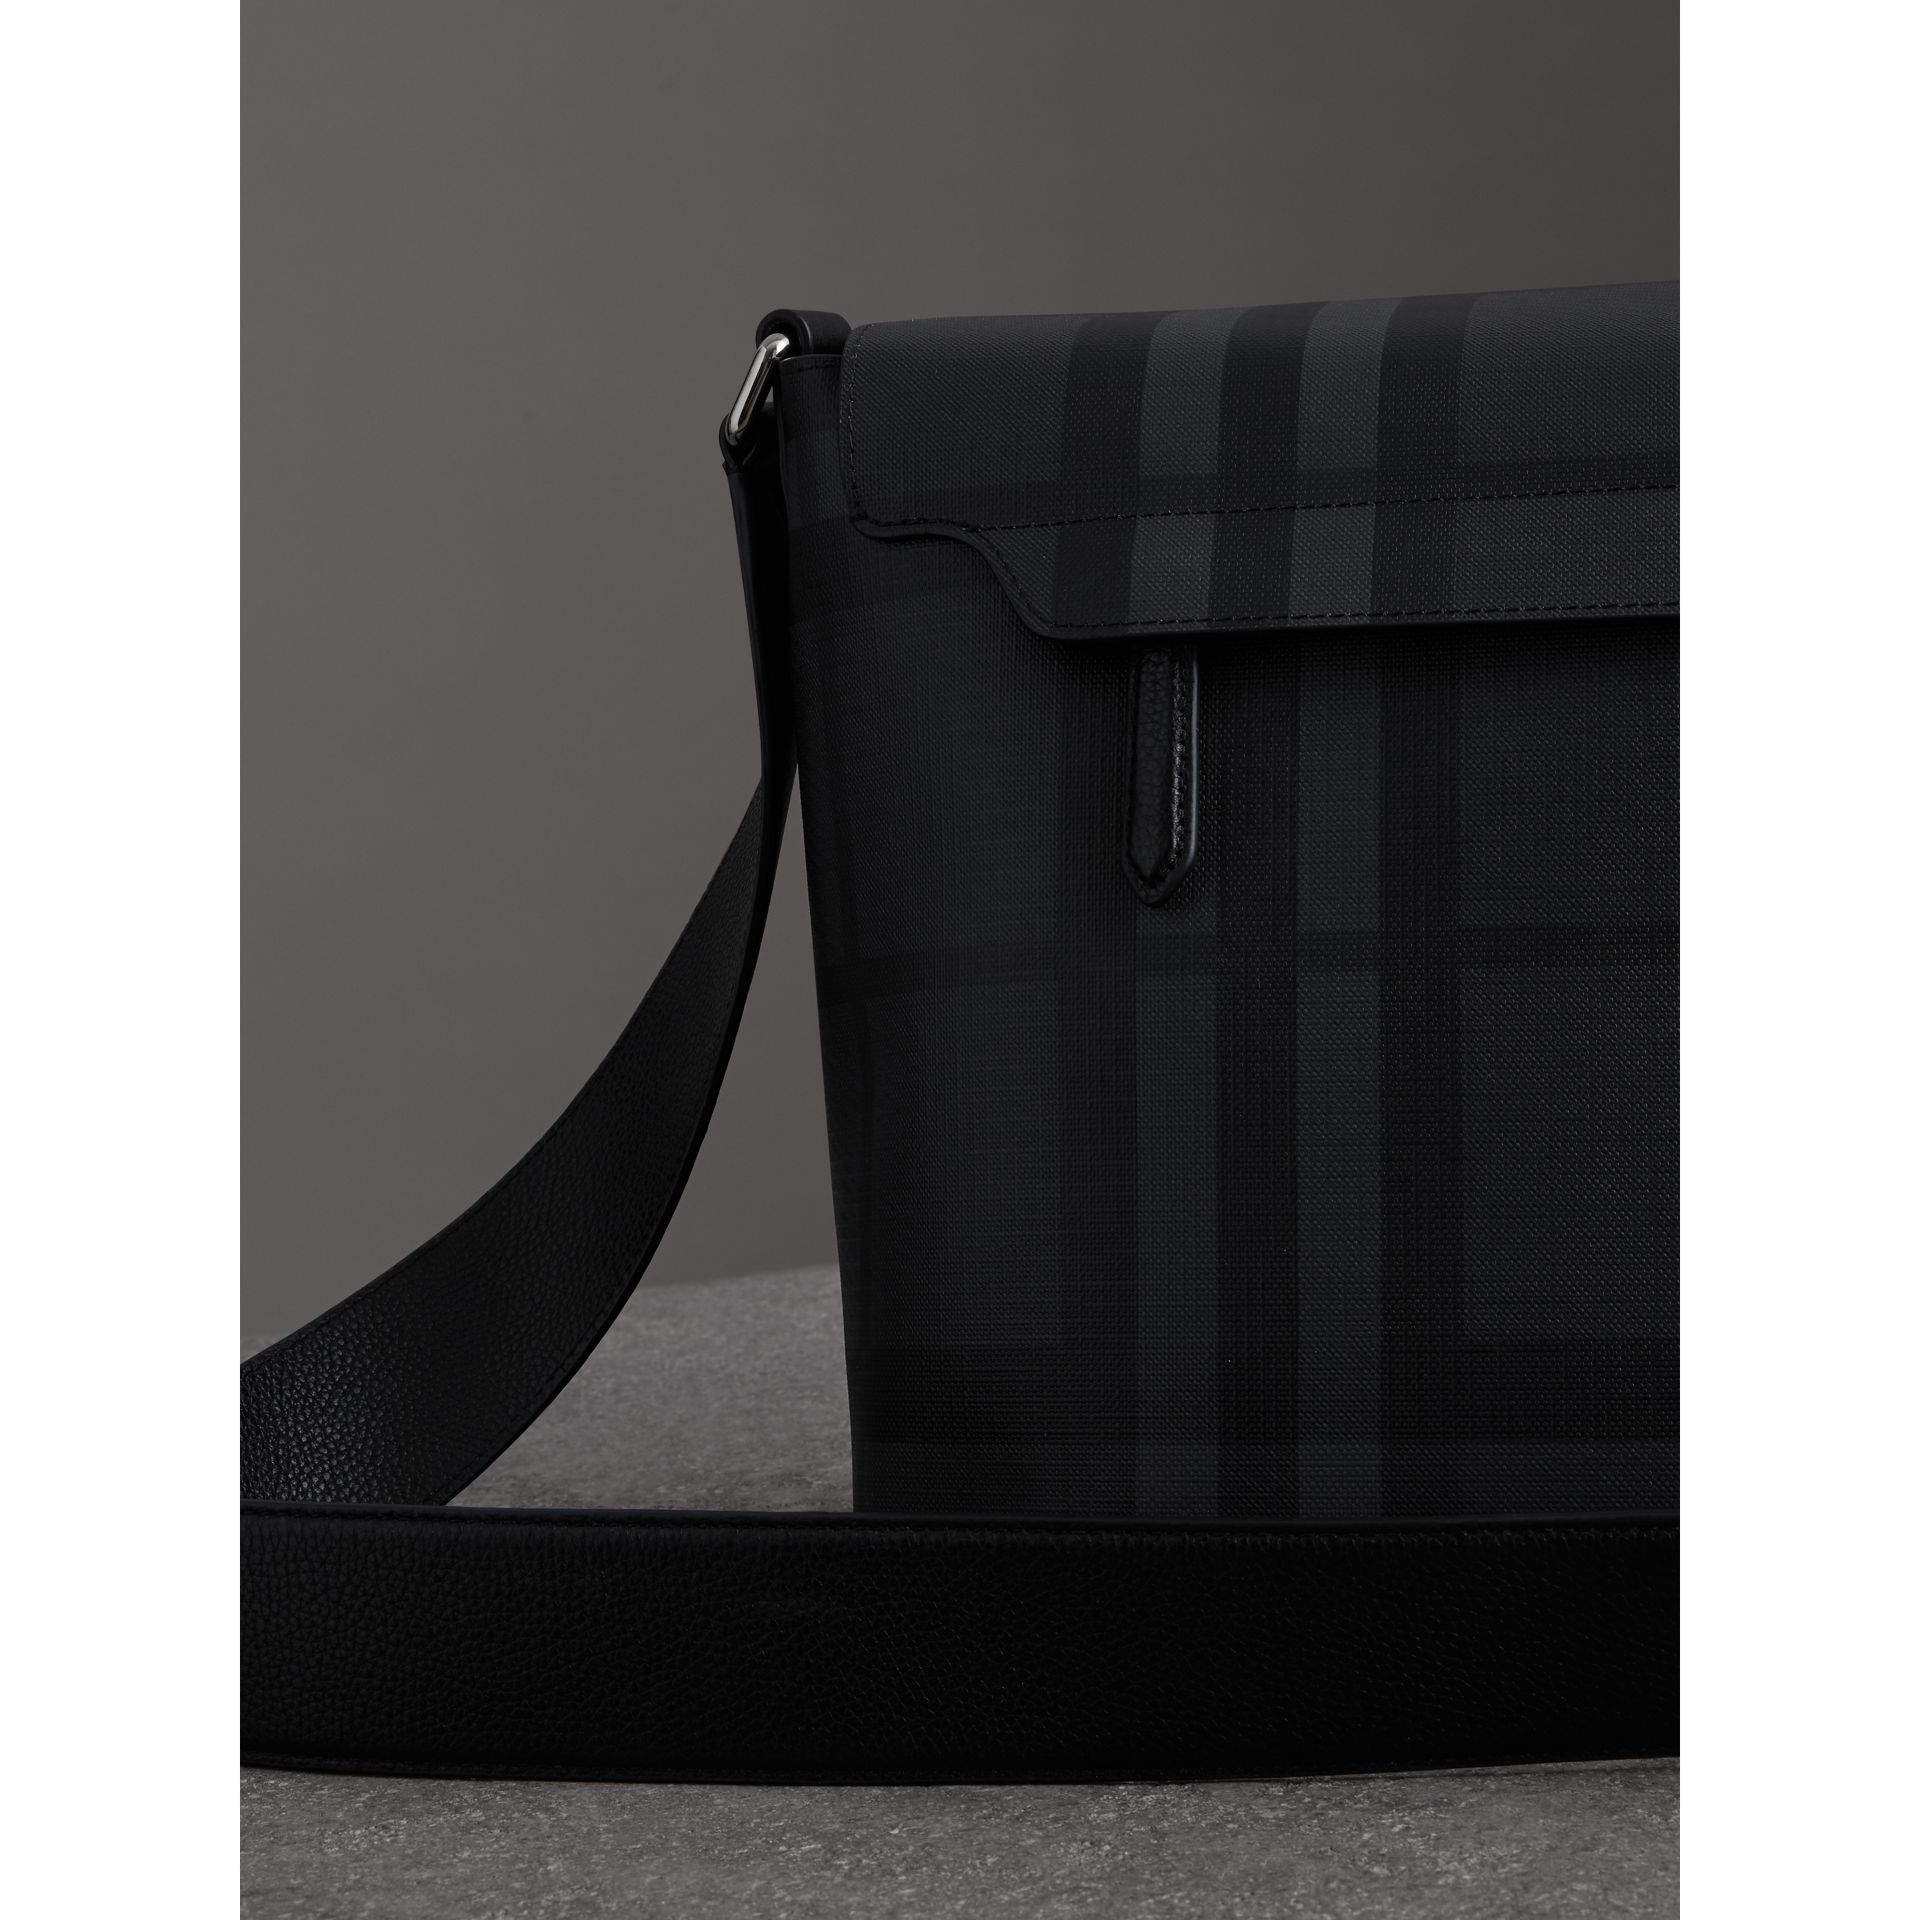 Large Logo Print Messenger Bag in Charcoal - Men | Burberry United States - gallery image 4